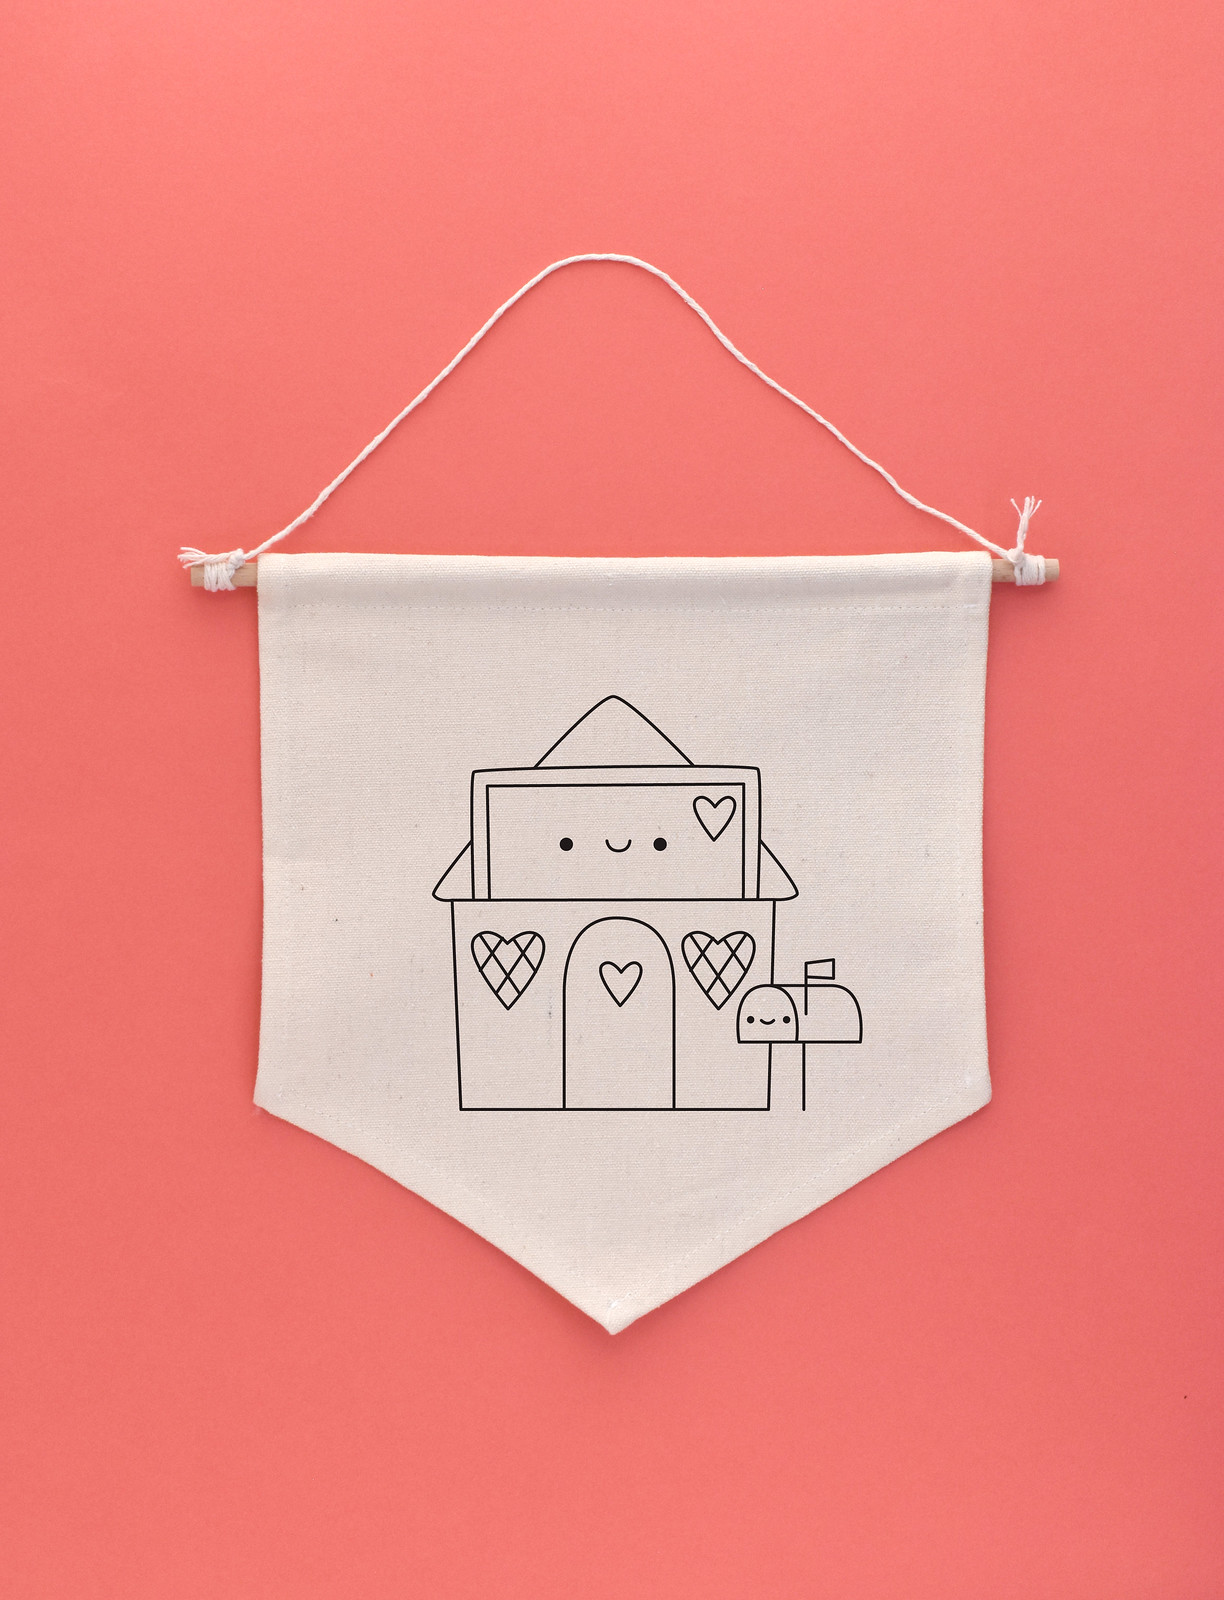 February Lovely Envelope House Embroidery Pattern